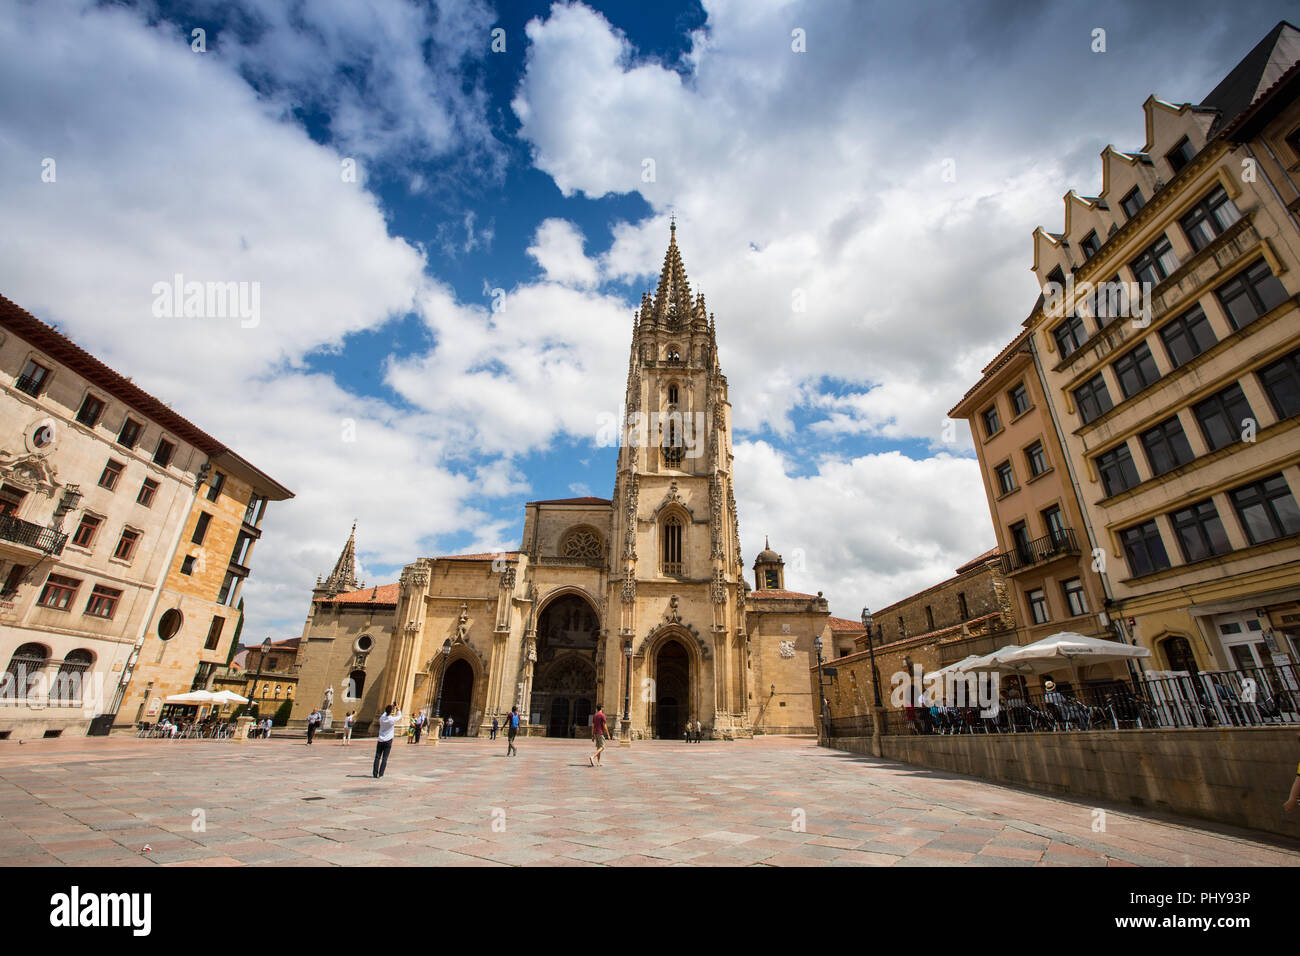 The city of Oviedo in Asturias, North West Spain - Stock Image